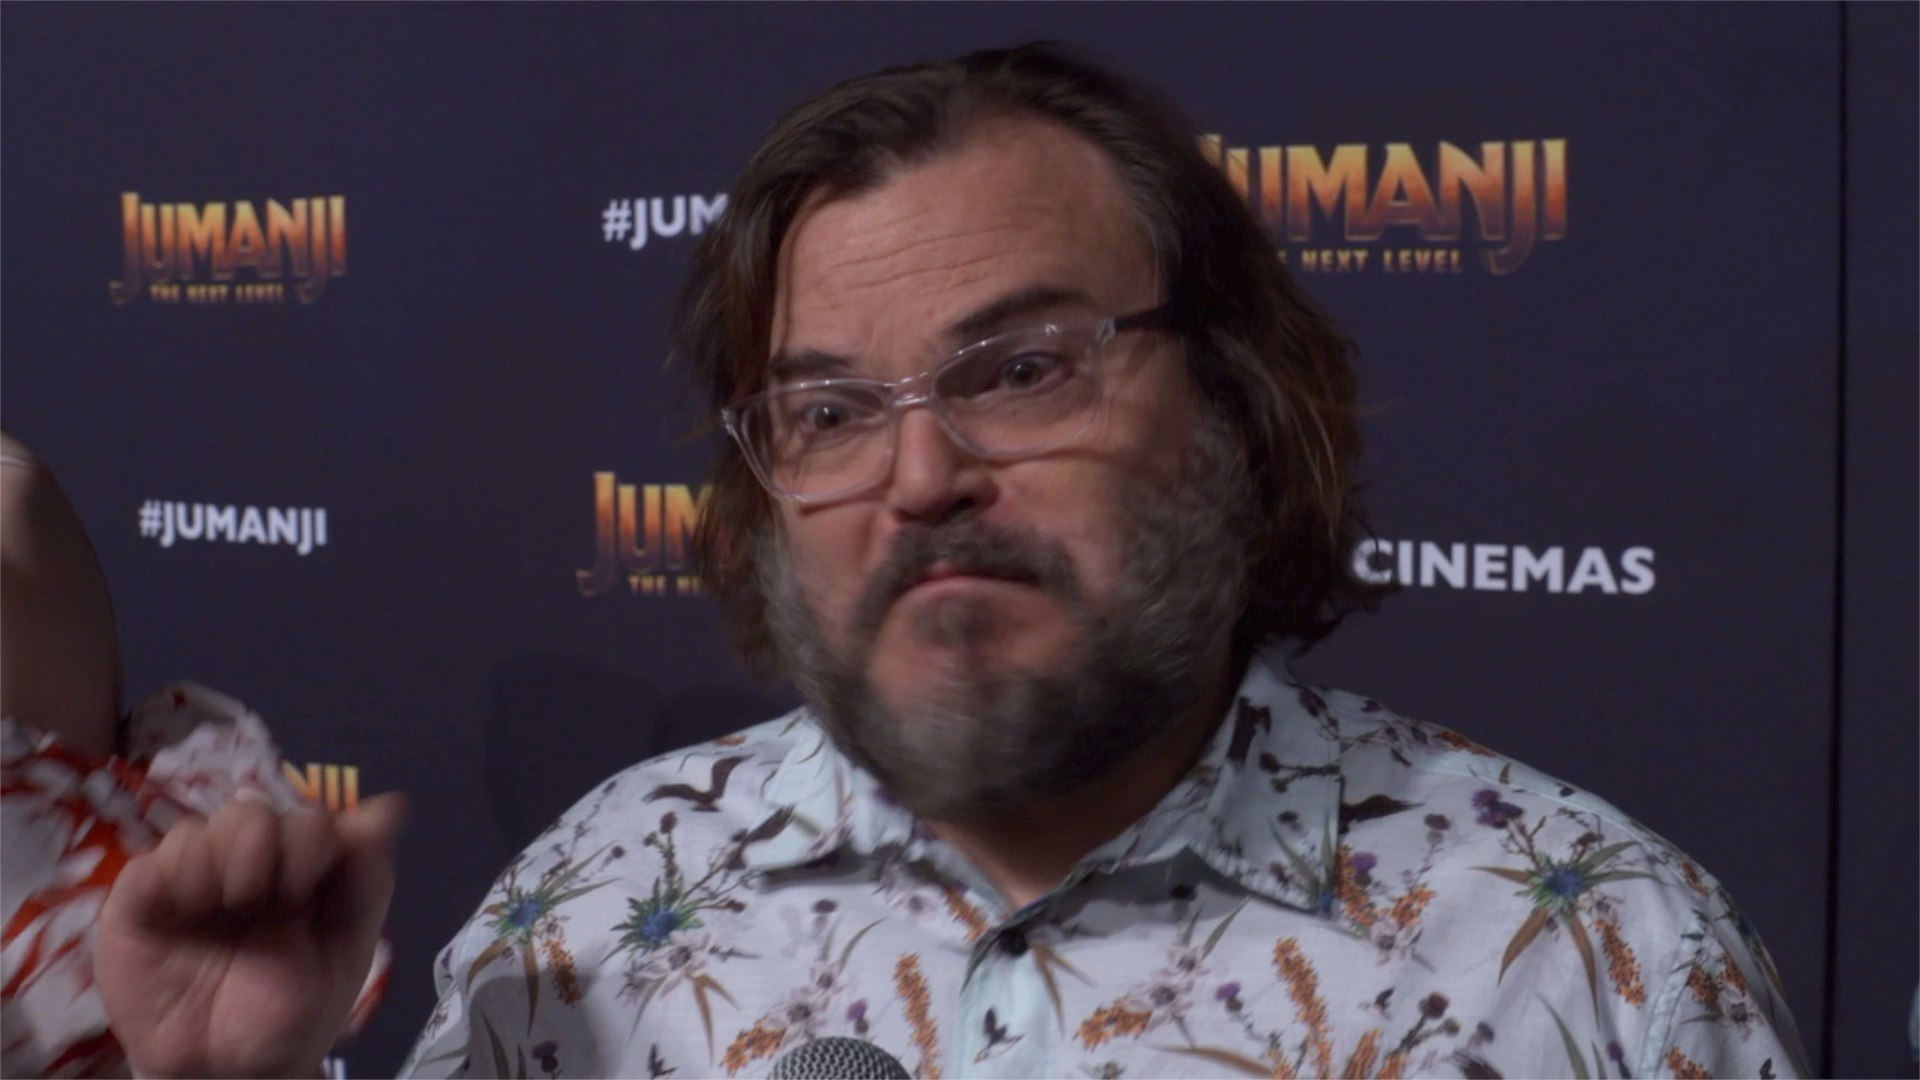 'Jumanji: The Next Level' Premiere: Jack Black